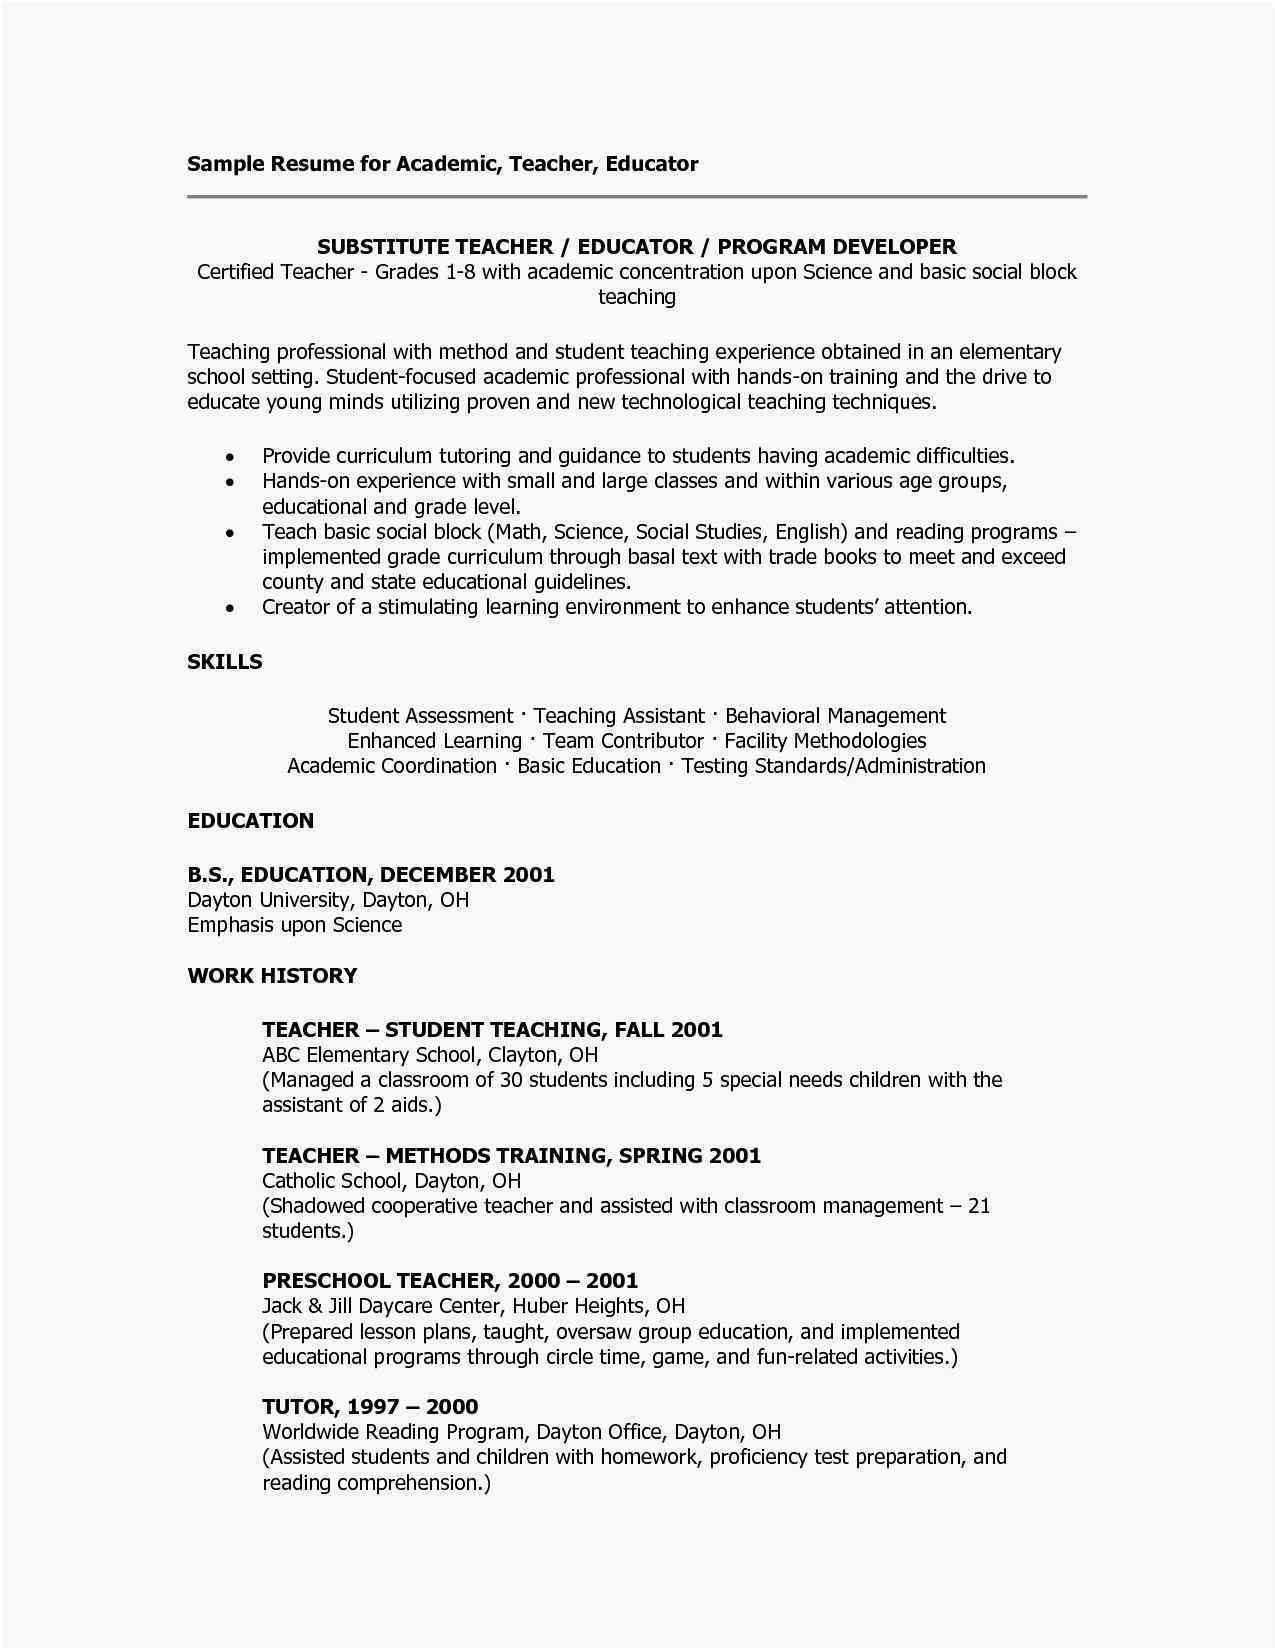 Cv For Online English Teacher Schon 30 New Resume Template Picture